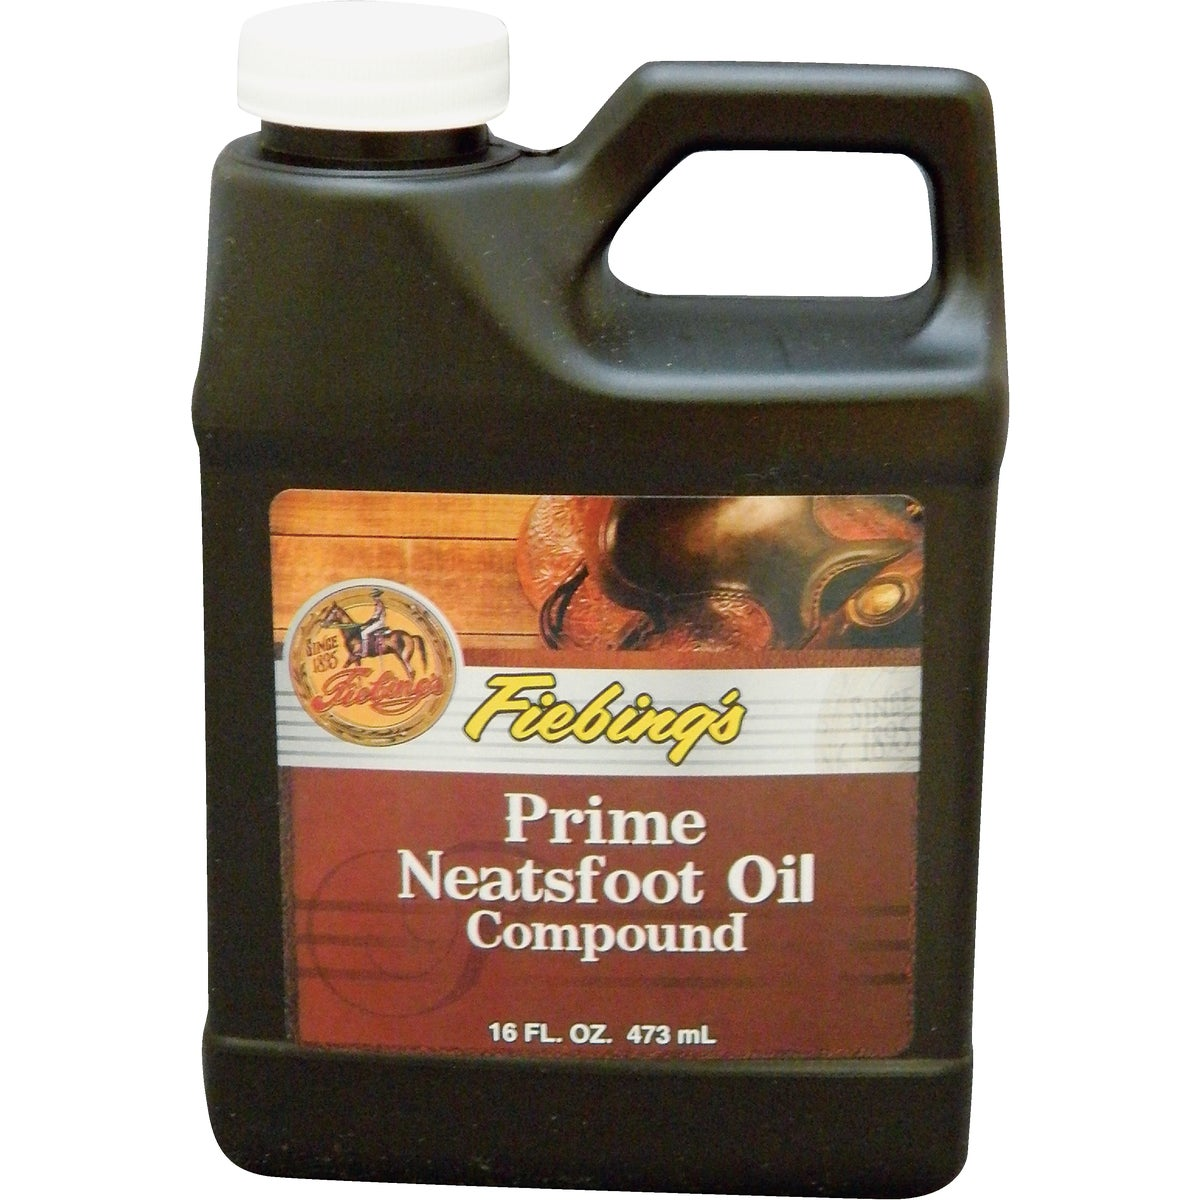 16OZ PRIME NEATSFOOT OIL